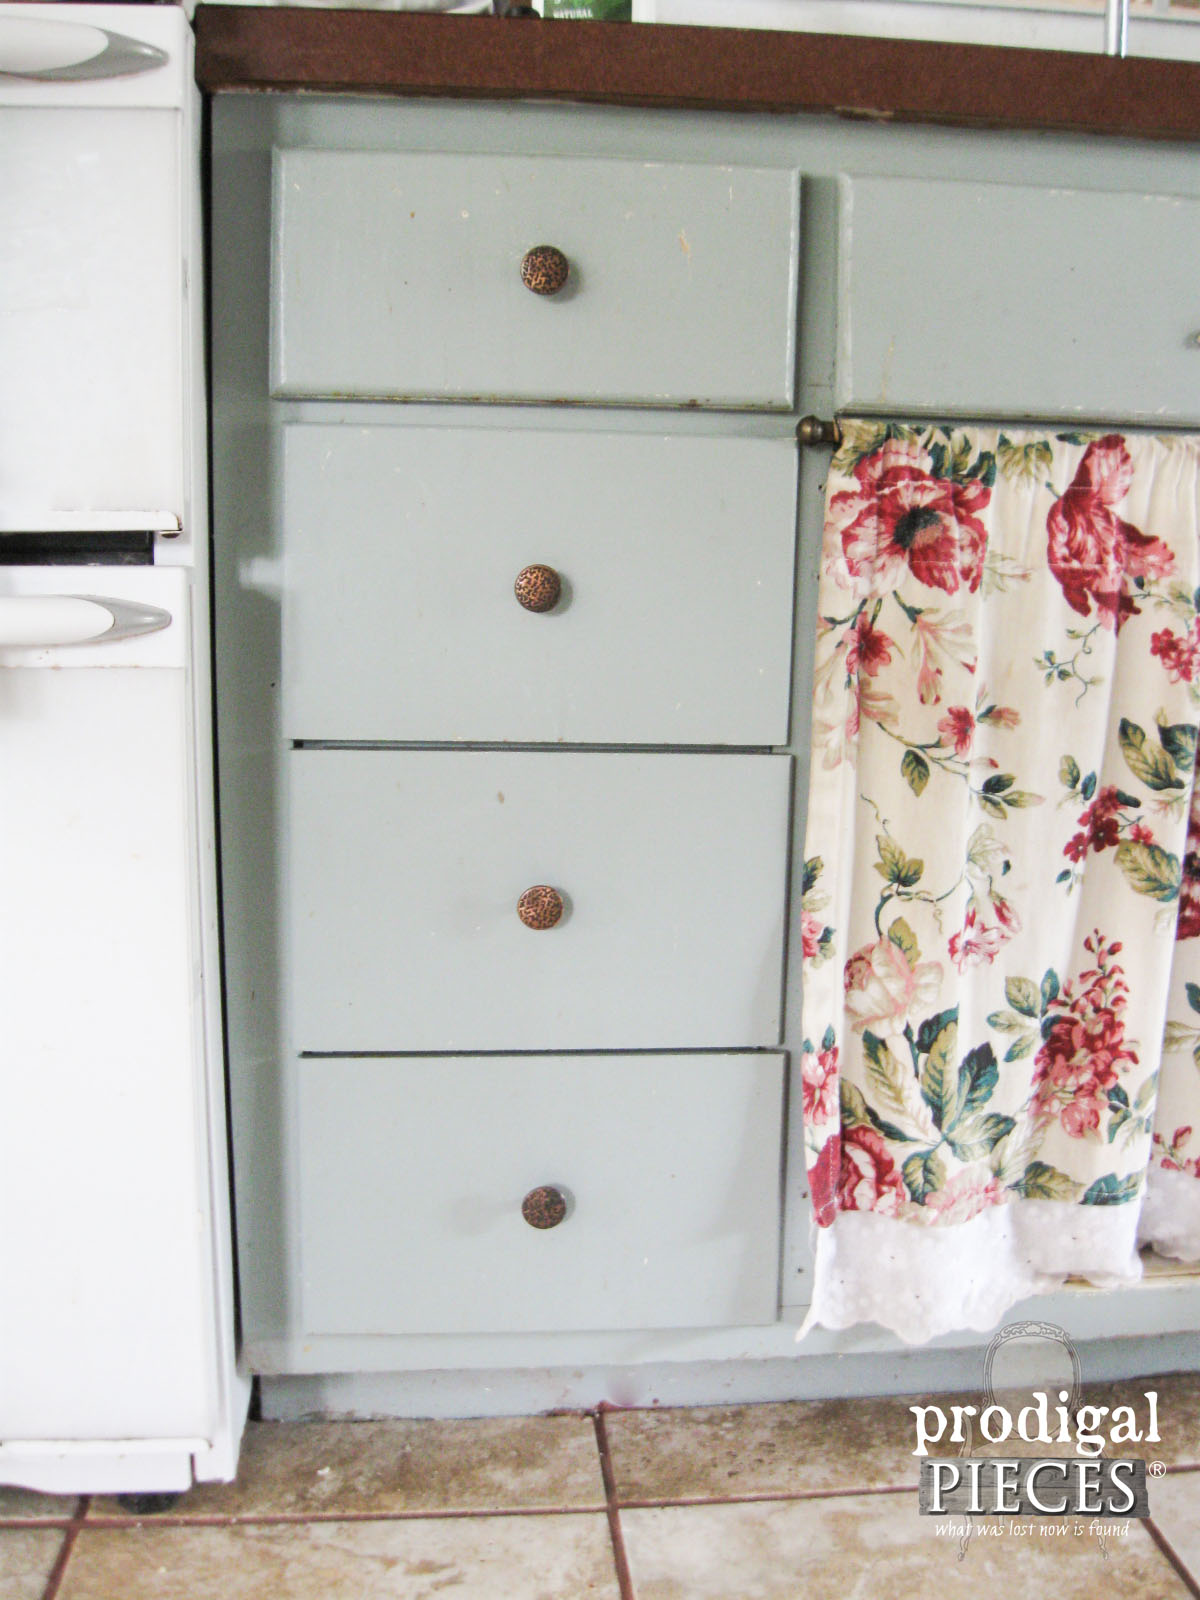 Farmhouse Kitchen Remodel Continues with the Drawers | Prodigal Pieces | www.prodigalpieces.com